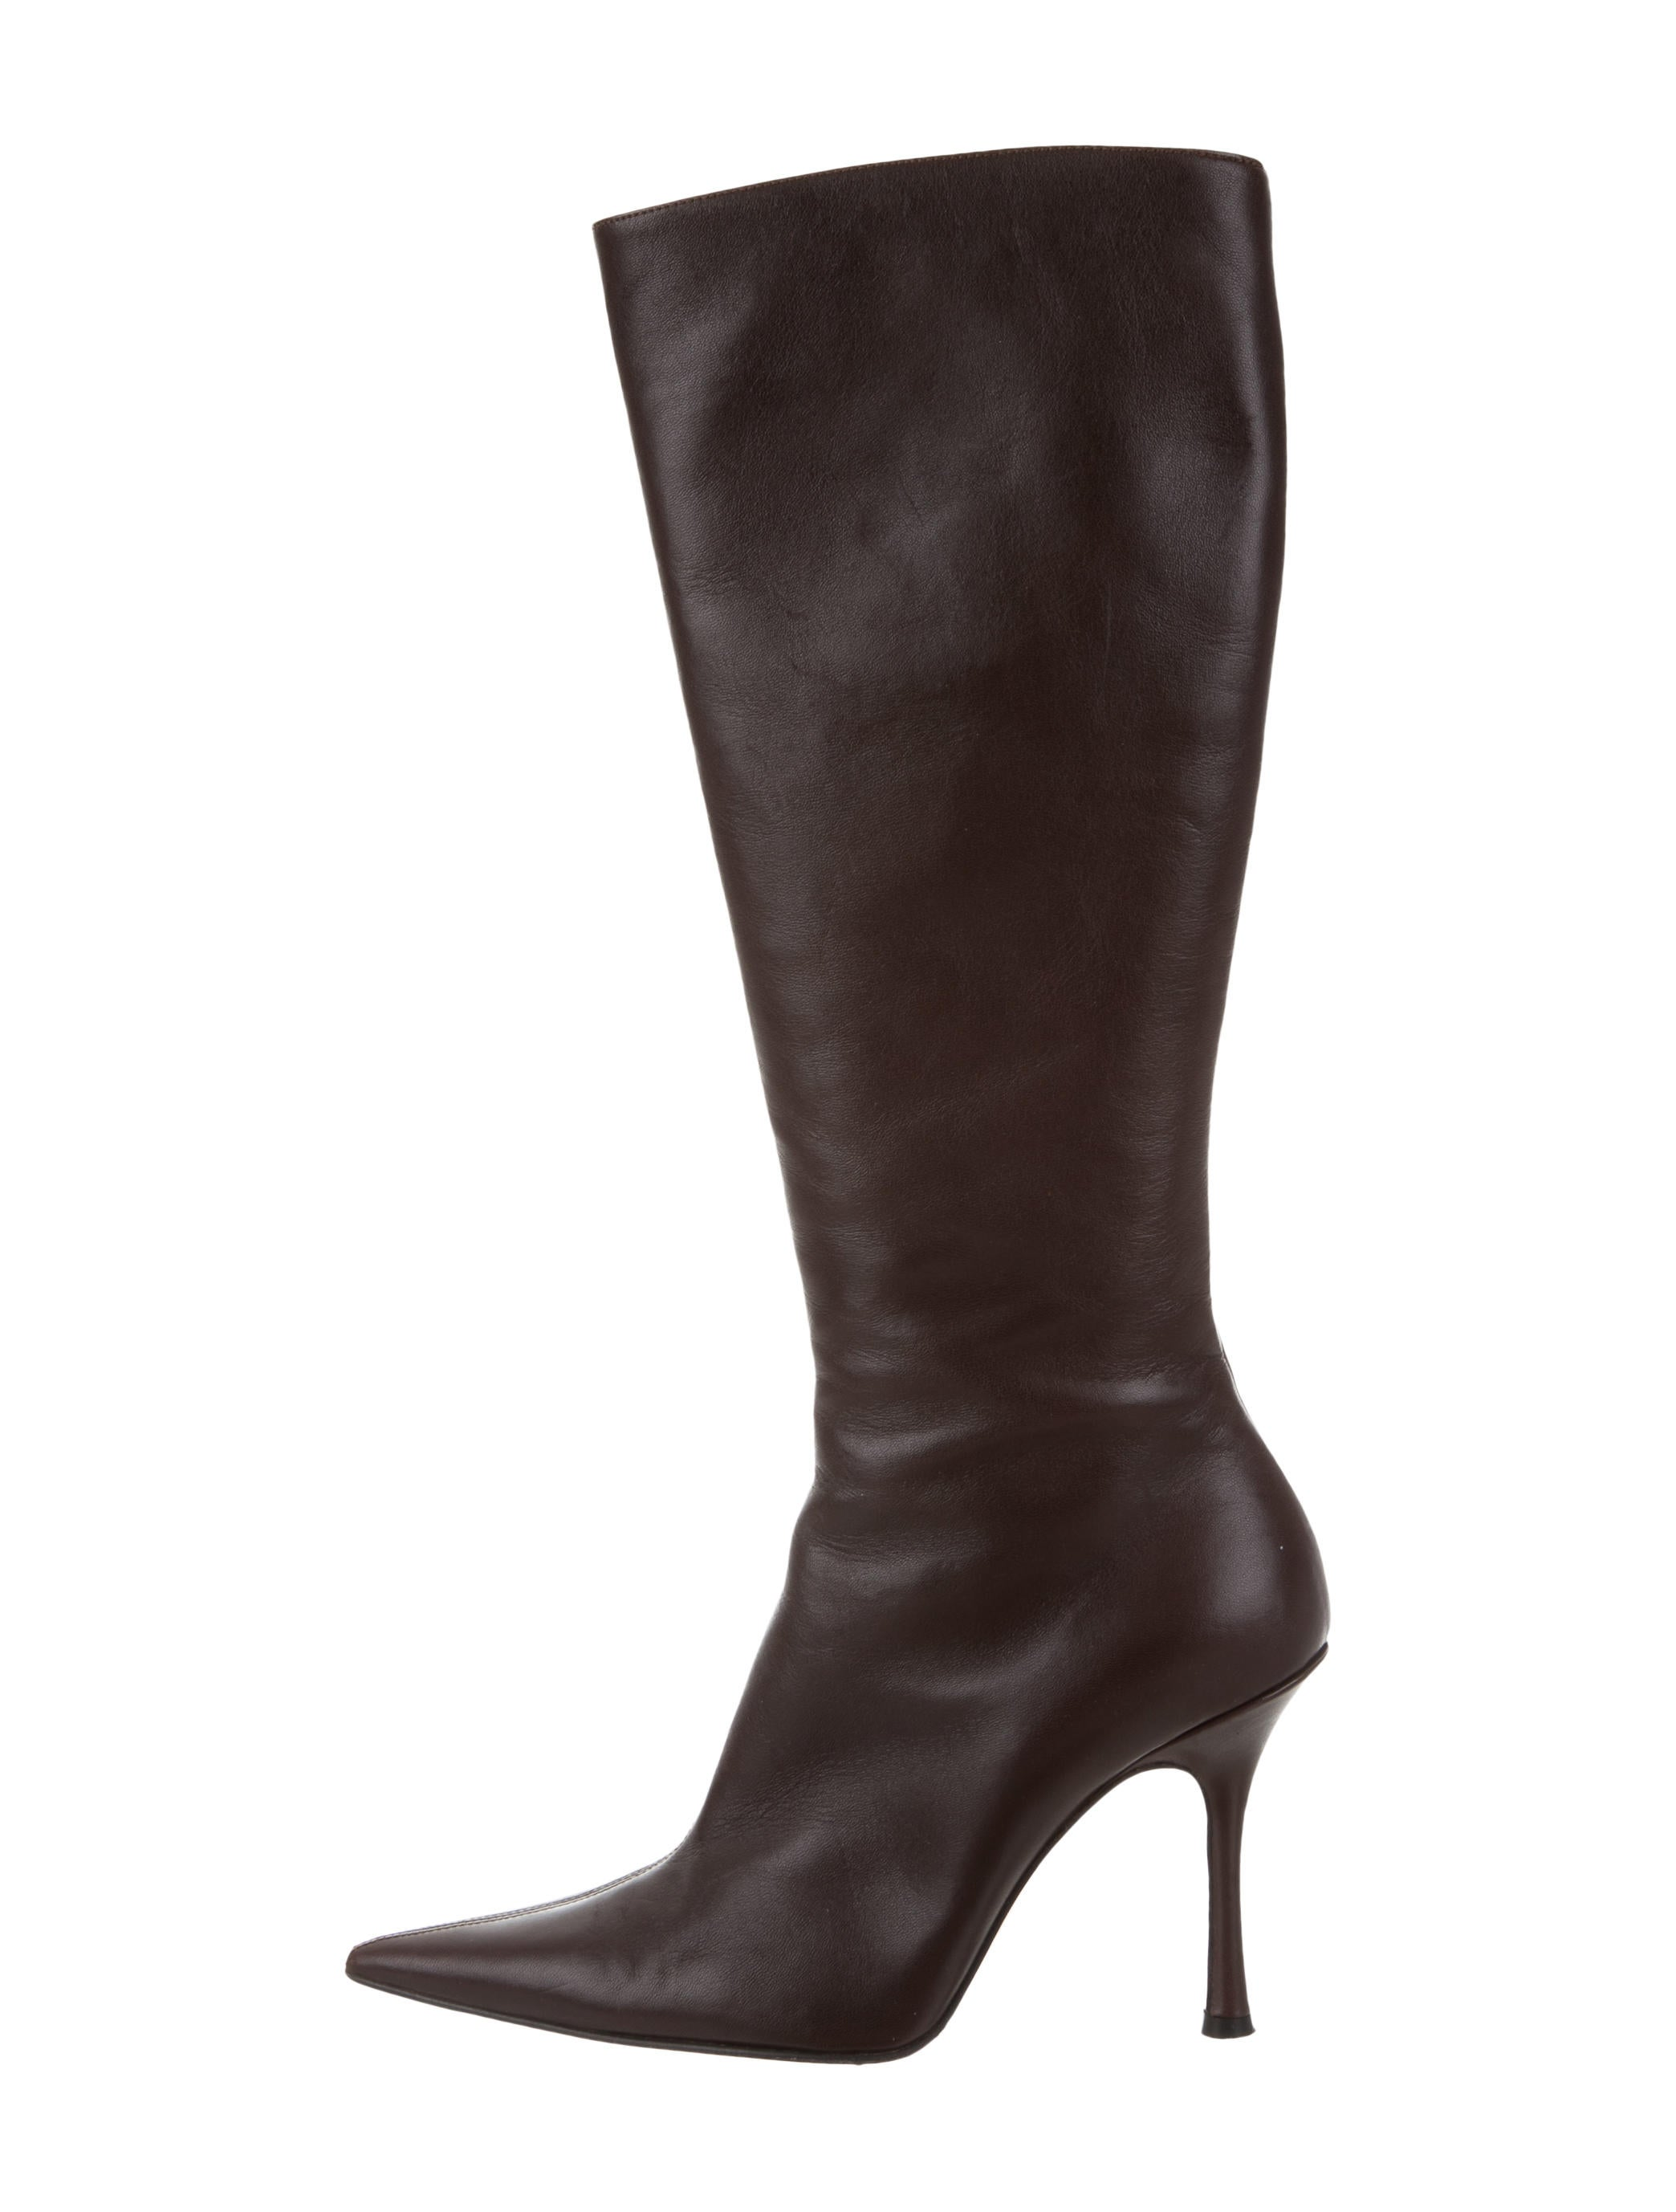 outlet pre order 2014 newest for sale Christian Lacroix Leather Knee-High Boots outlet many kinds of cheap discount sale KeSZ8LIS